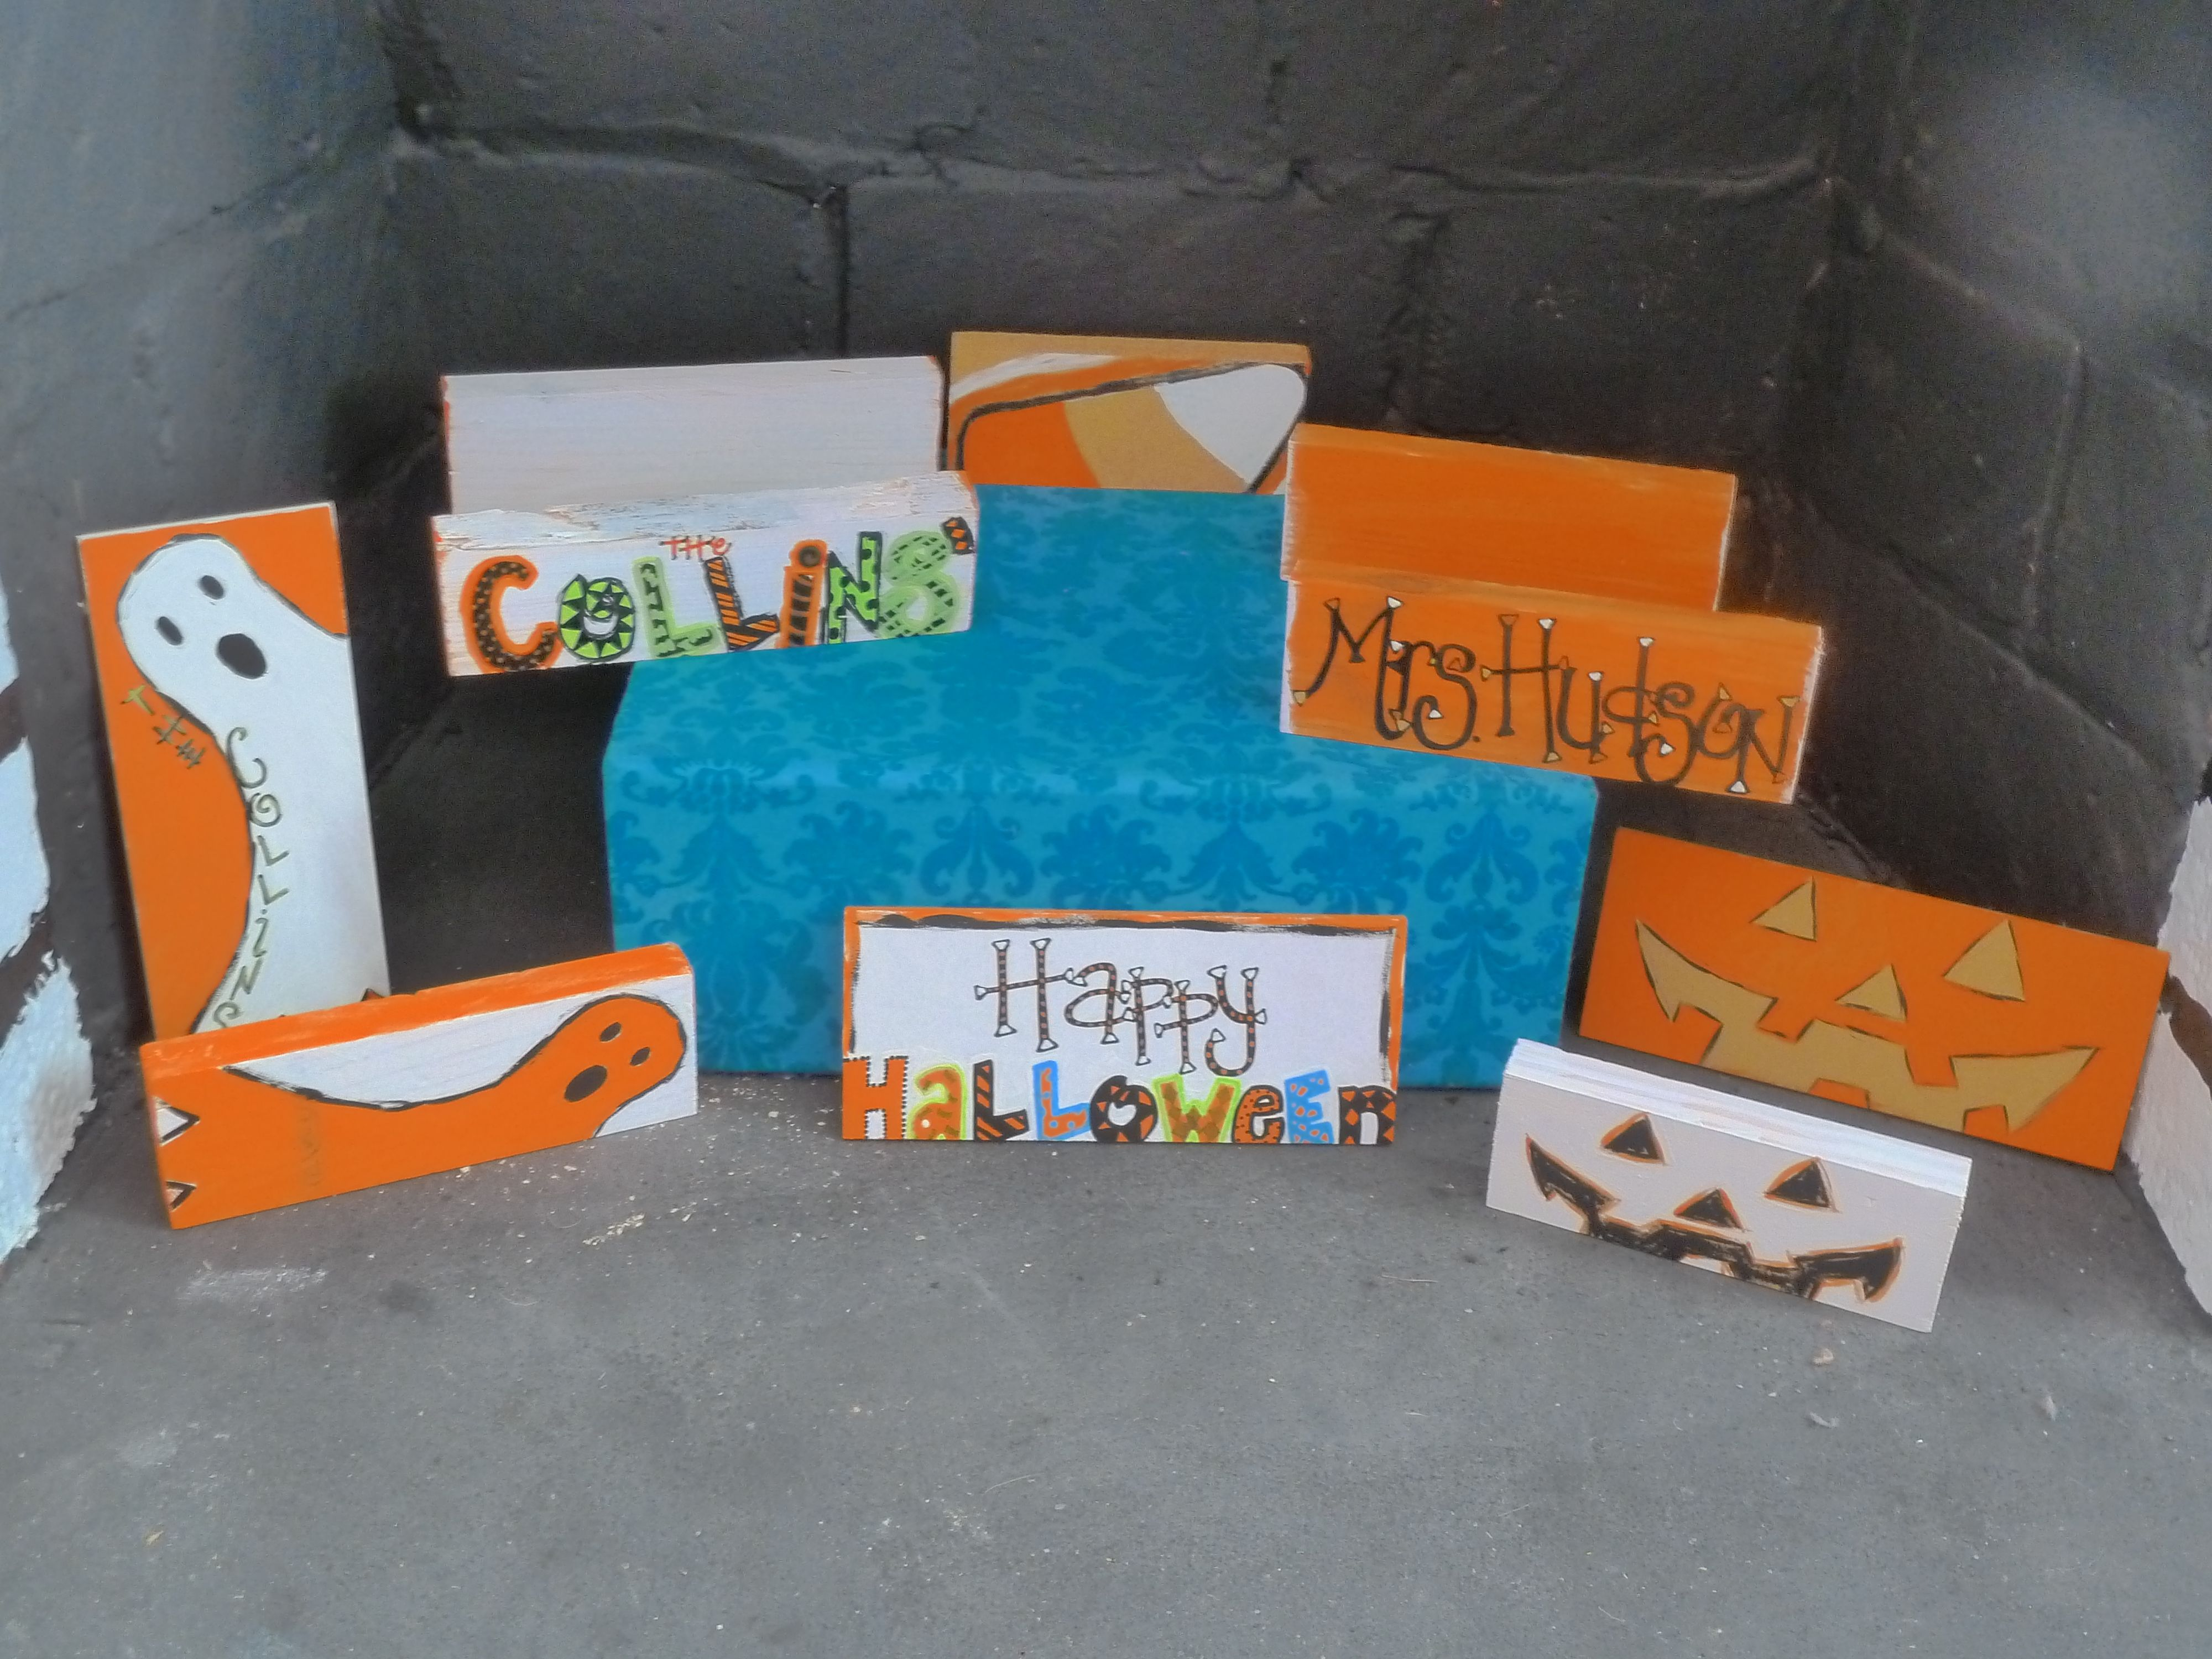 The KEL Kollection presents our HaLLowEEn Signs! -- For Purchasing, please visit: www.KoralinesMommy.etsy.com or www.KELKollection.com